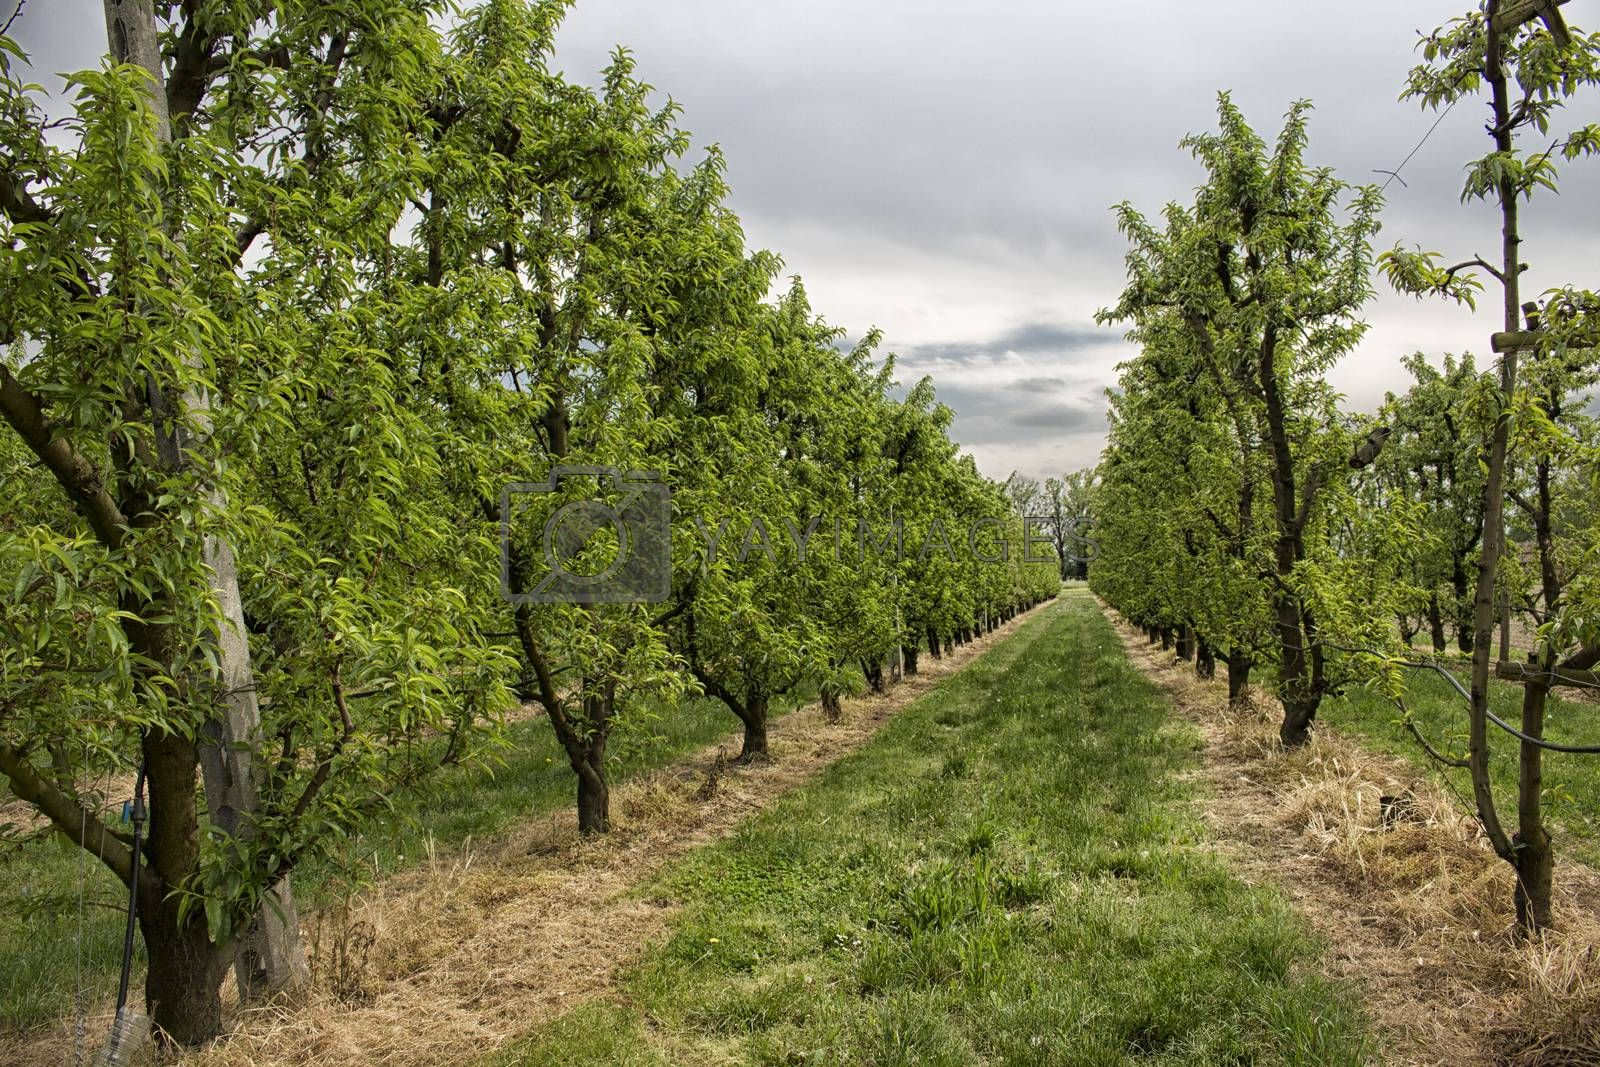 Peach trees rows in an green field: Italian Agriculture